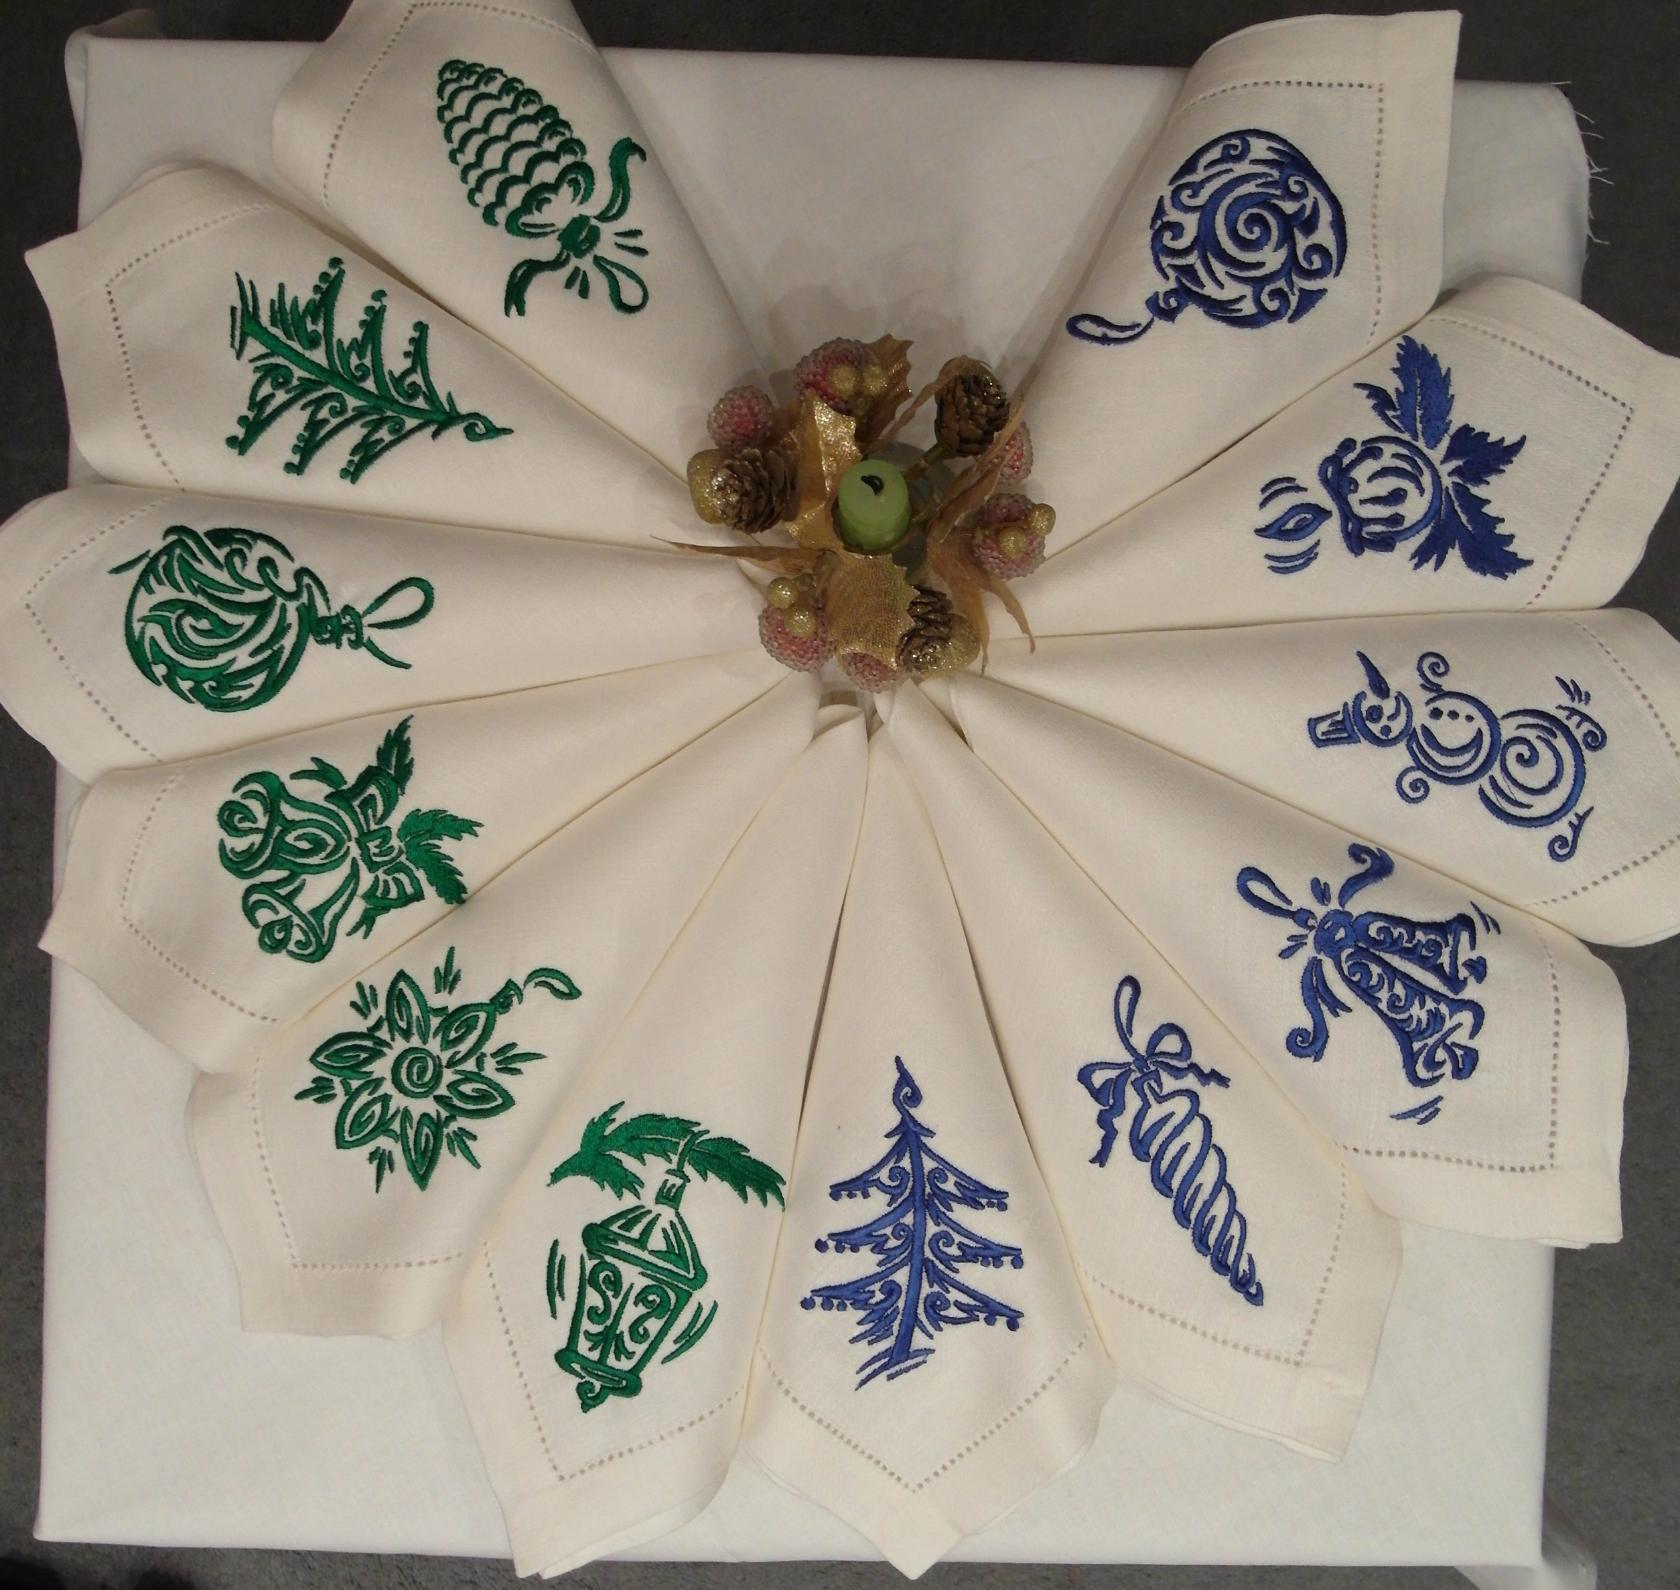 Christmas And Ny Napkins With Green And Blue Free Designs Holidays Embroidery Design Machine Embroidery Community